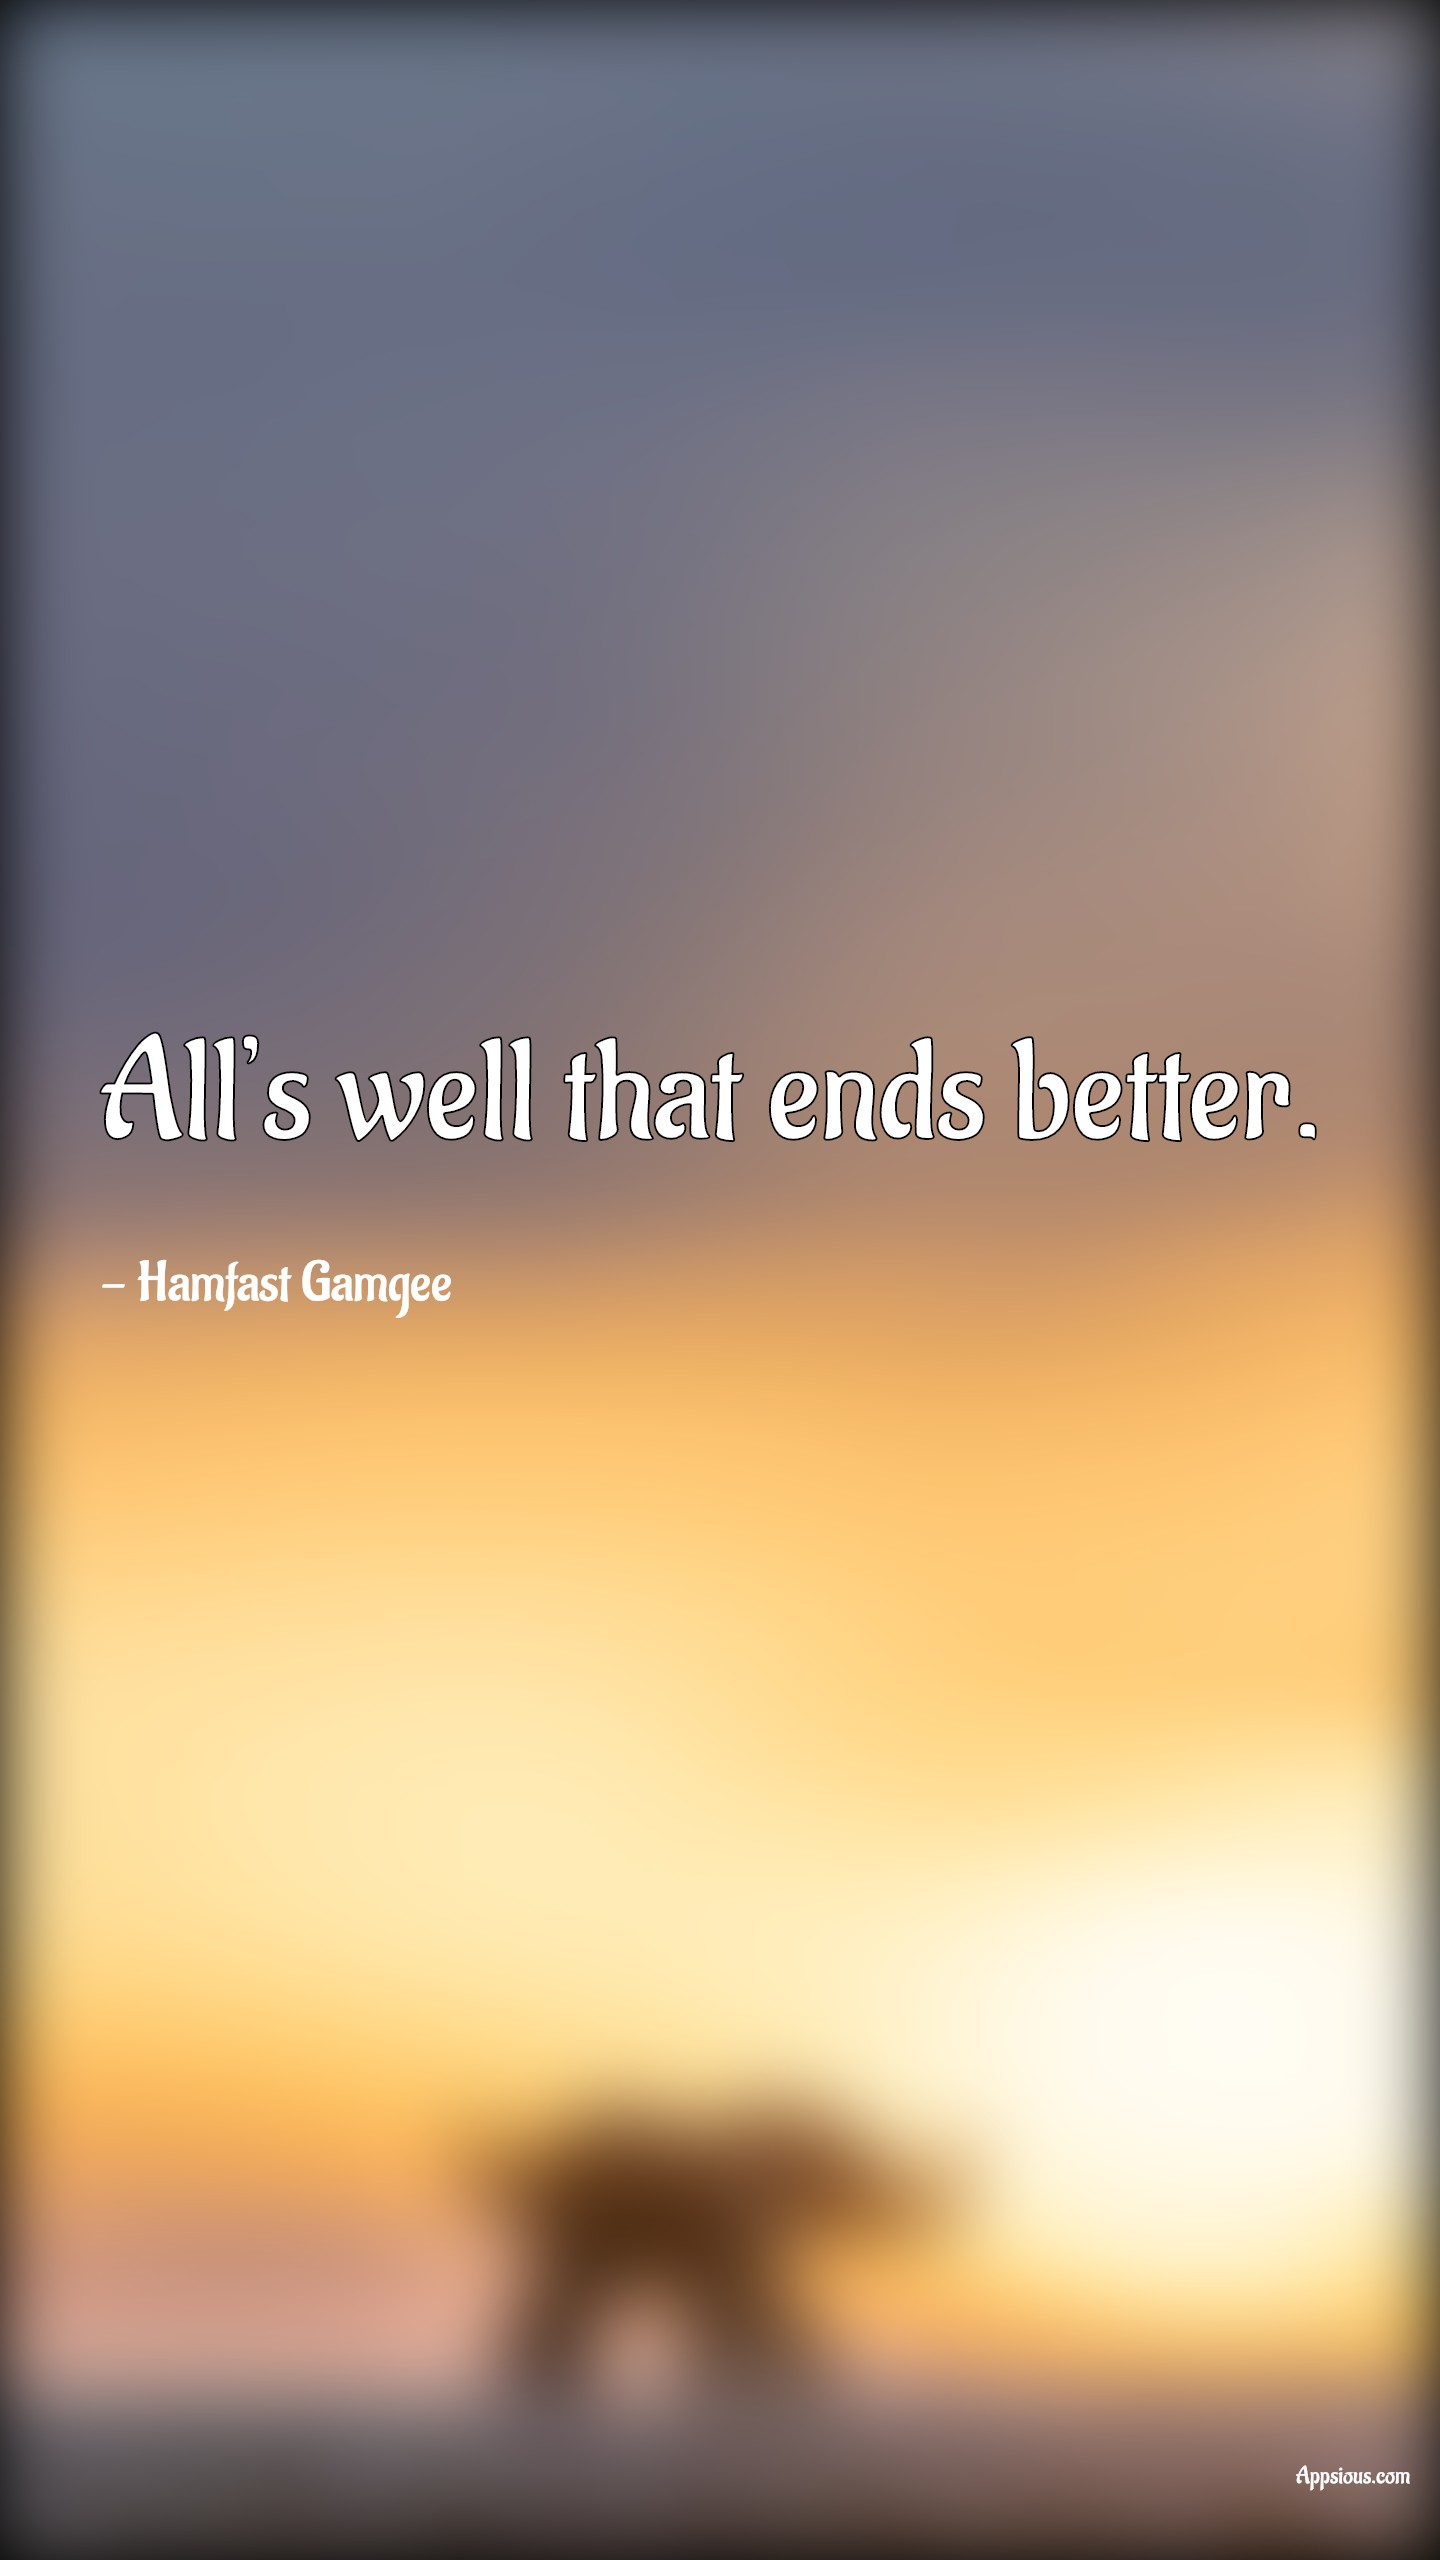 All's well that ends better.